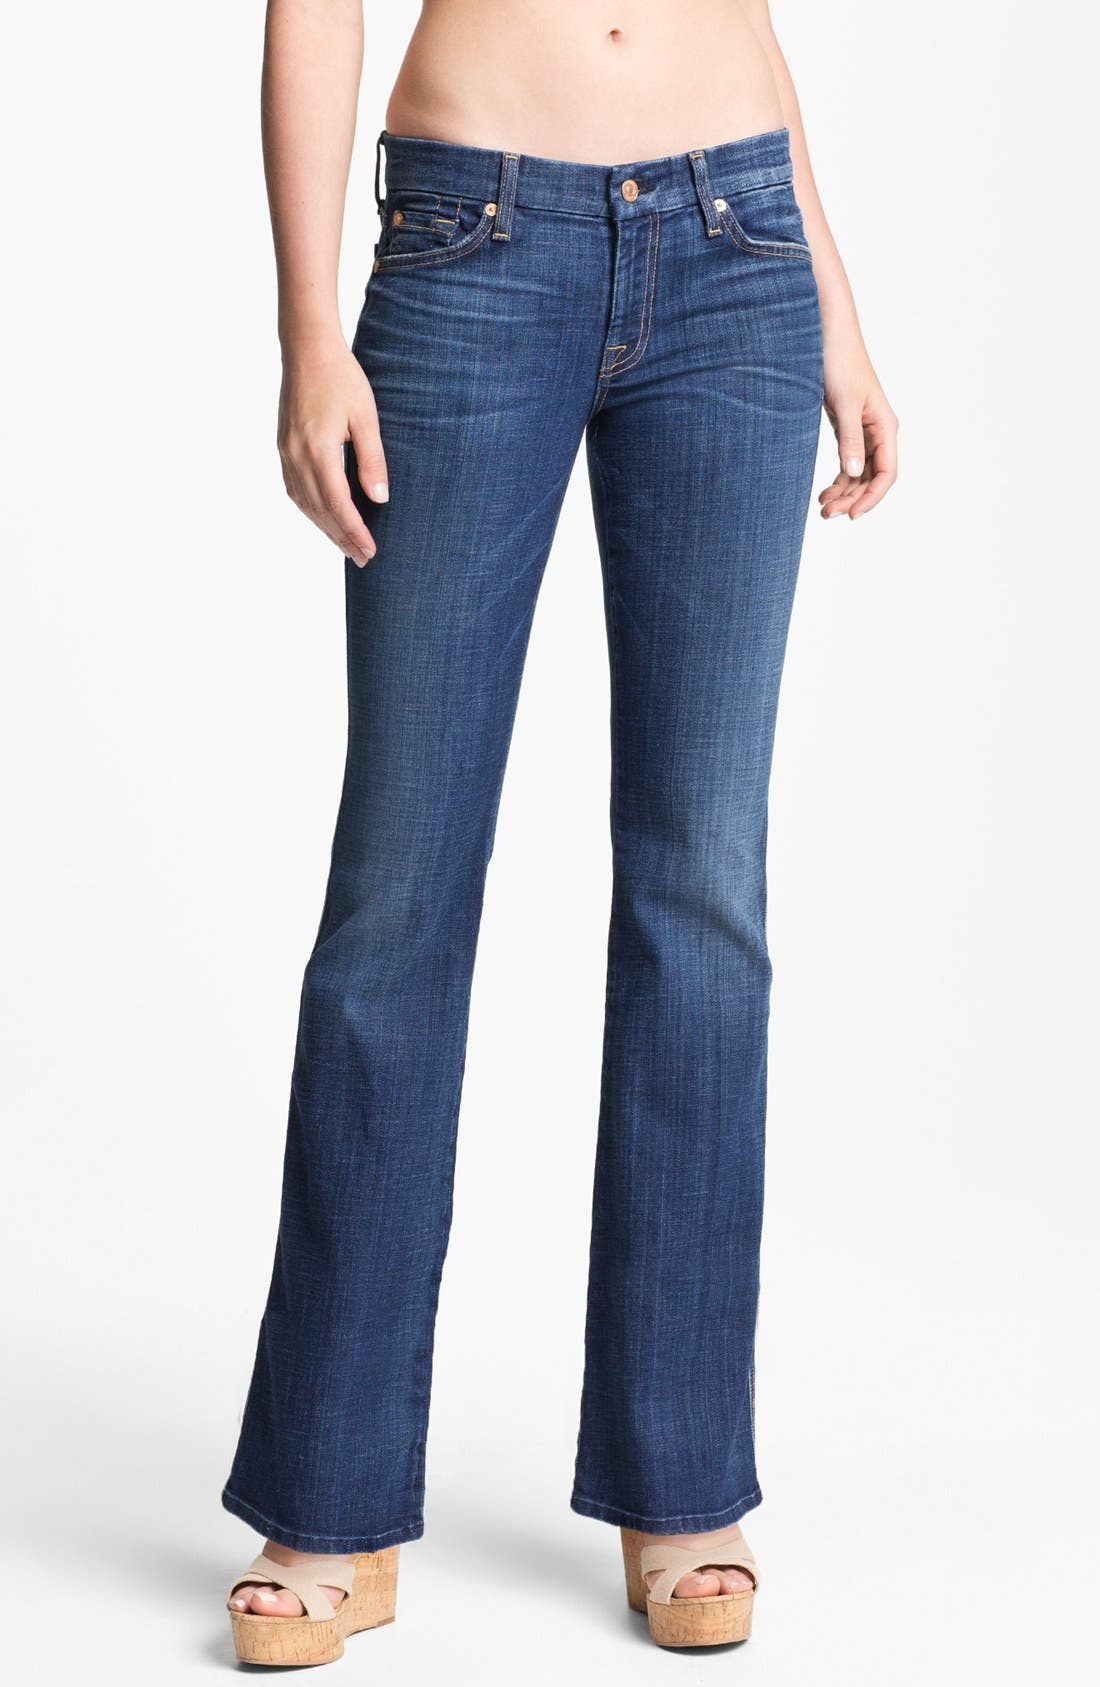 Alternate Image 1 Selected - 7 For All Mankind® 'Lexie A' Jeans (Washed Medium Indigo) (Petite)